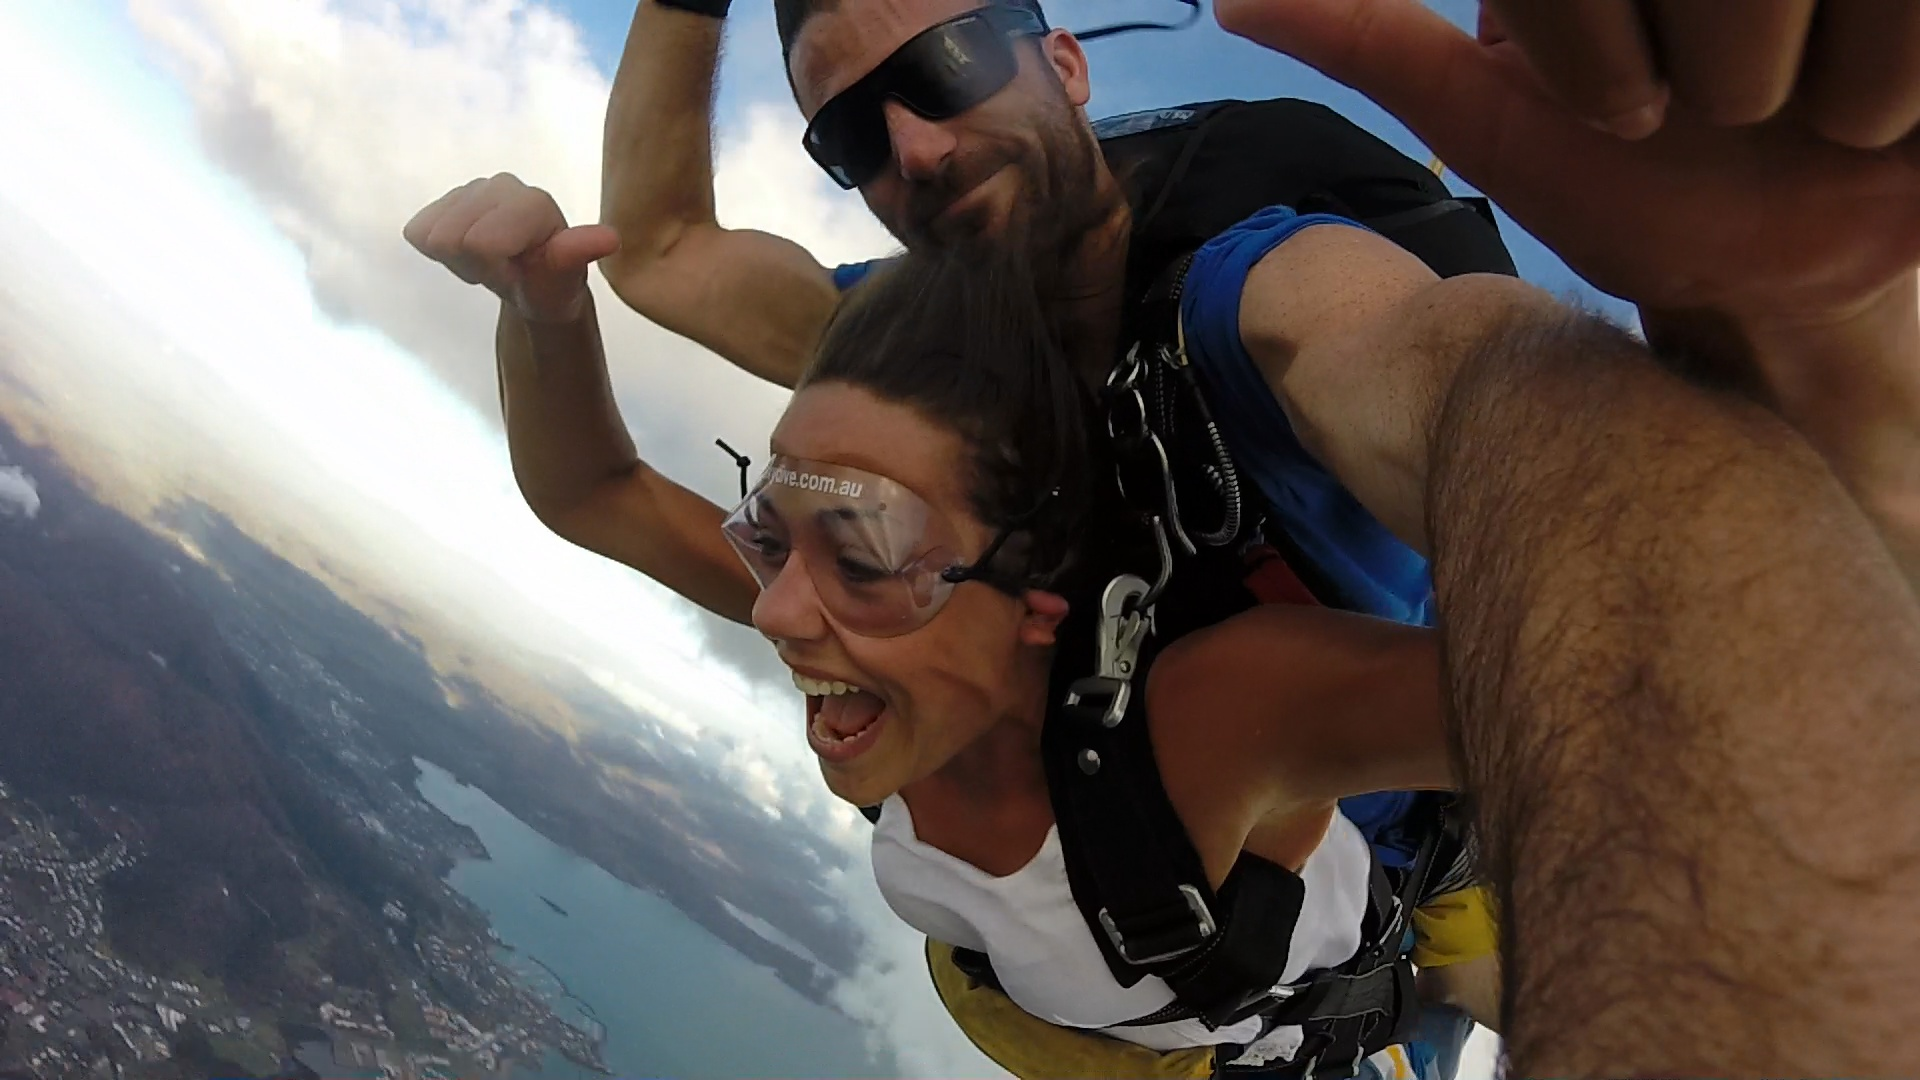 Skydiving over the Whitsunday Islands